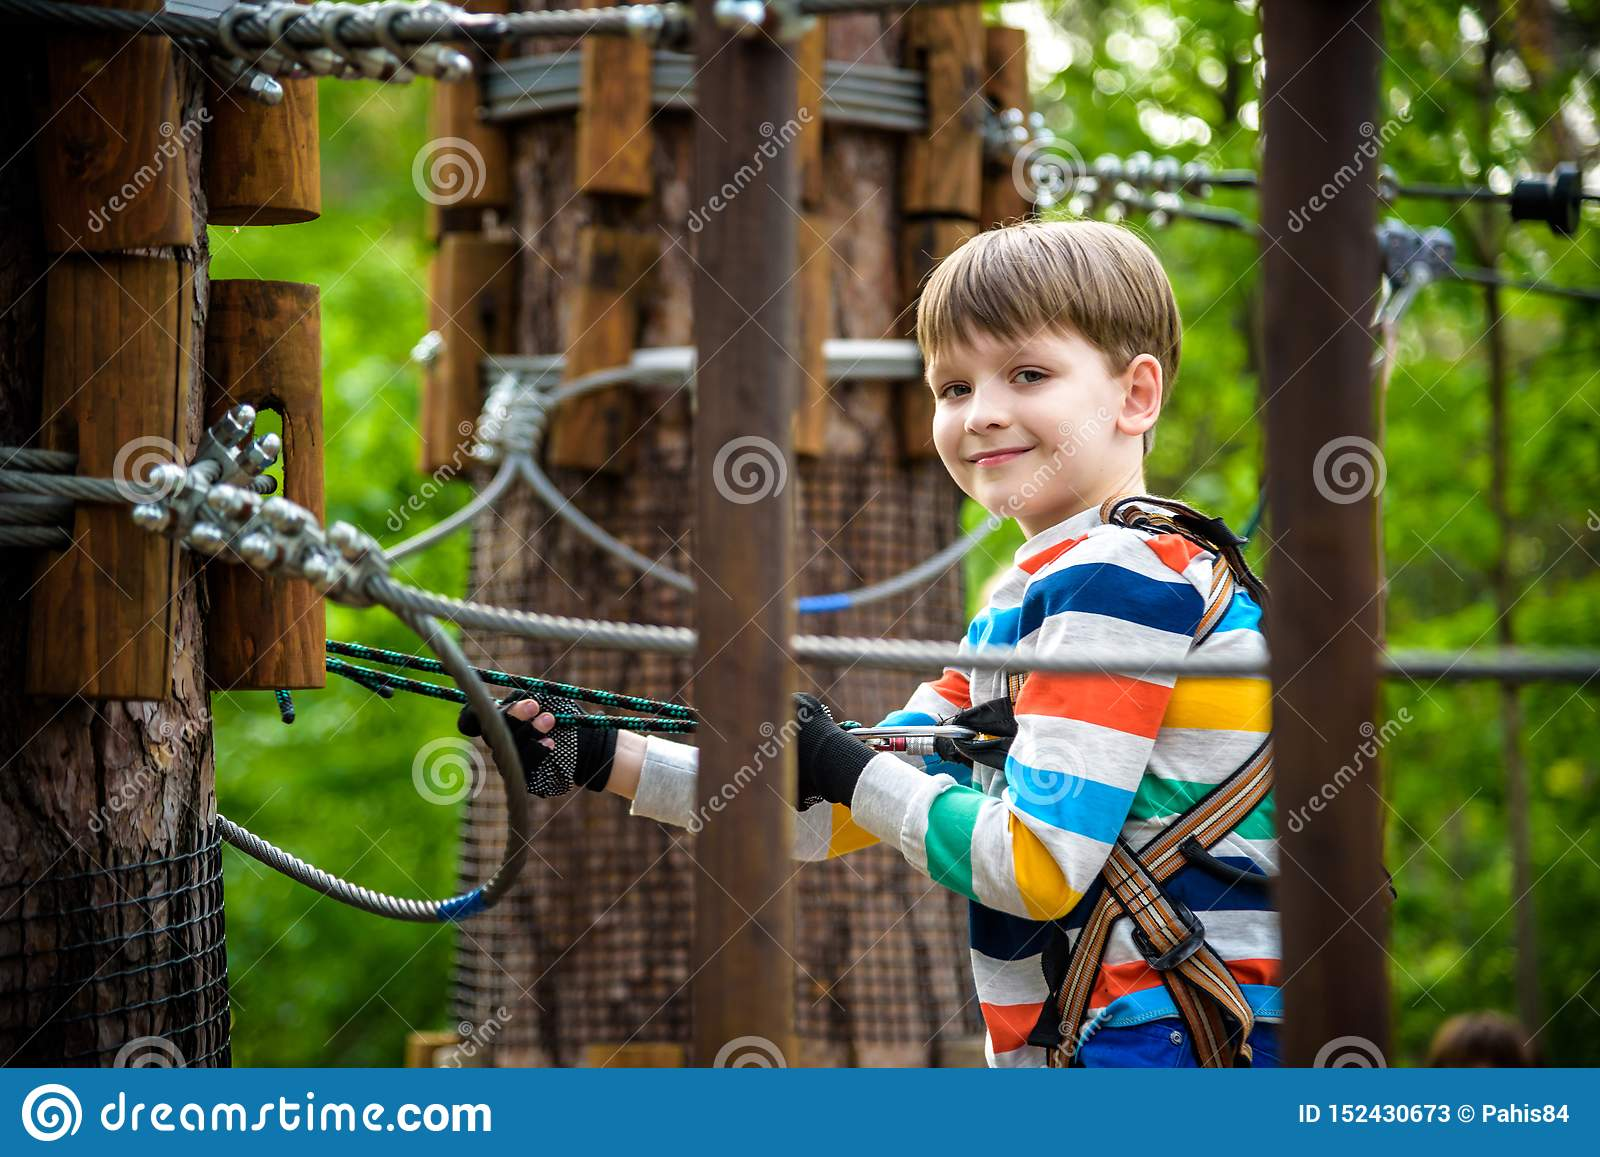 Young cute child boy in summer clothing, safety harness and helmet attached with carbine to cable moves slowly along rope way on